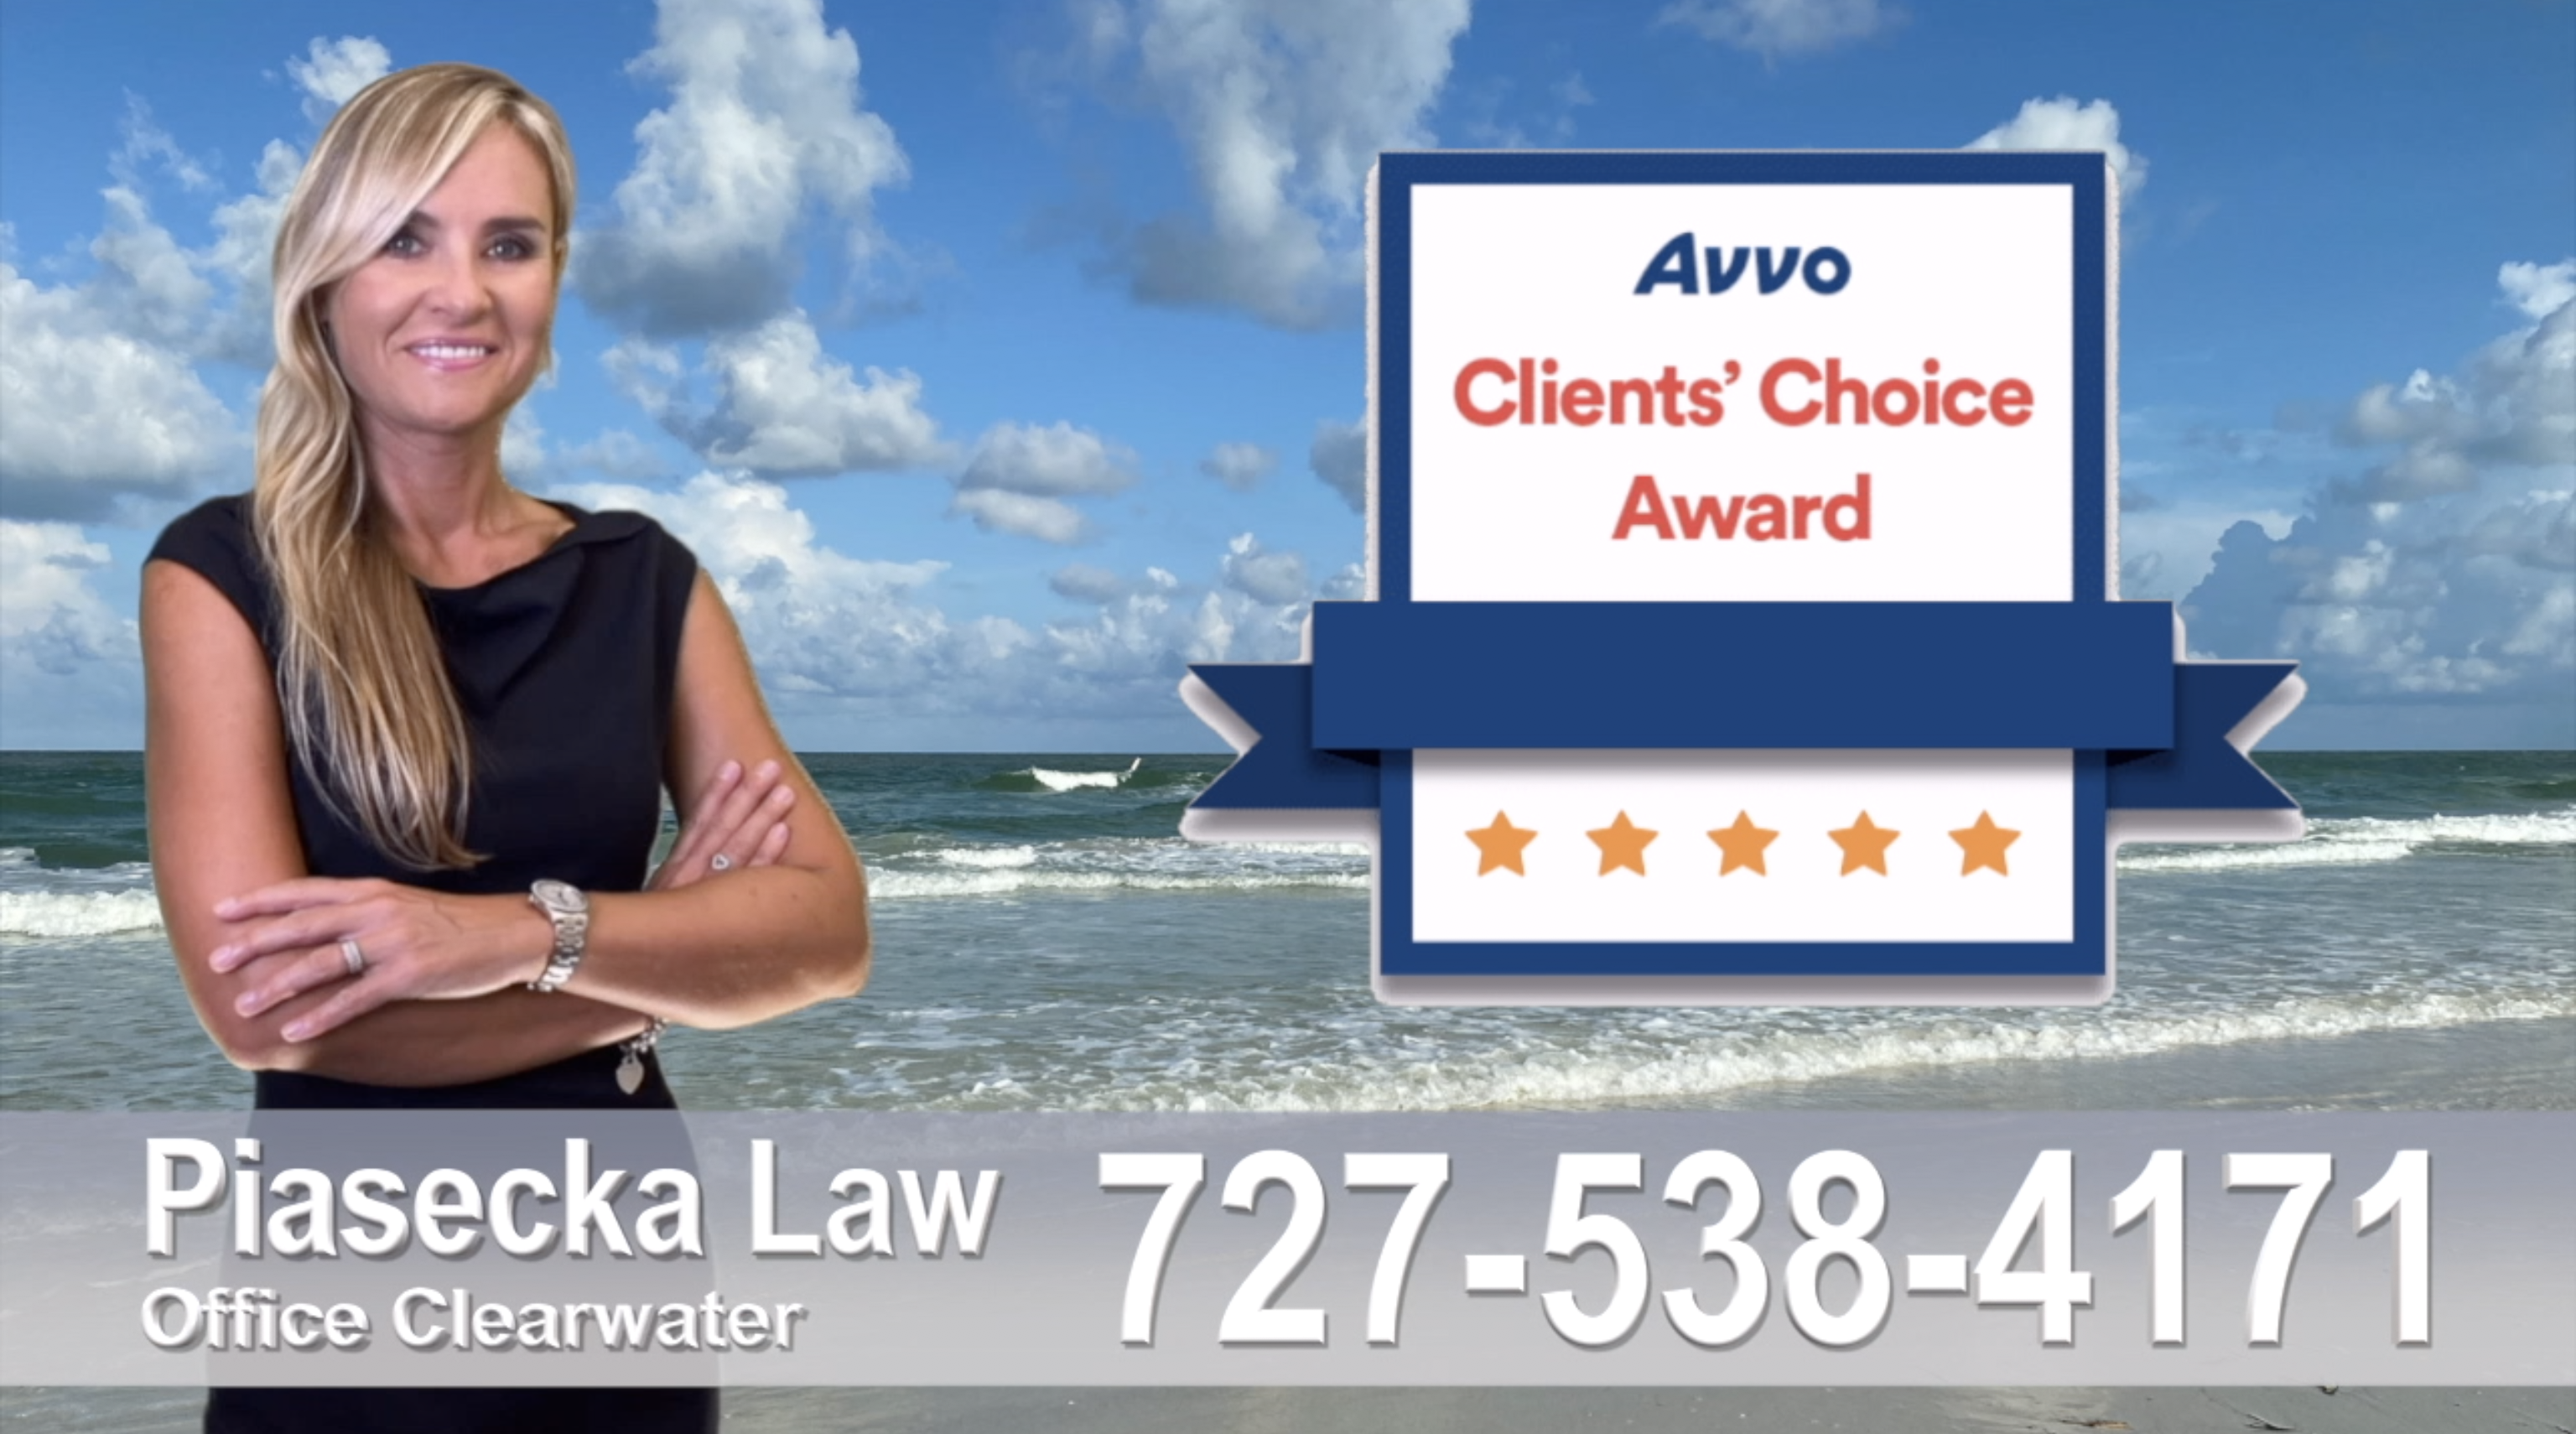 Polish Immigration Attorney polish lawyer, clients, reviews, clients, avvo, award